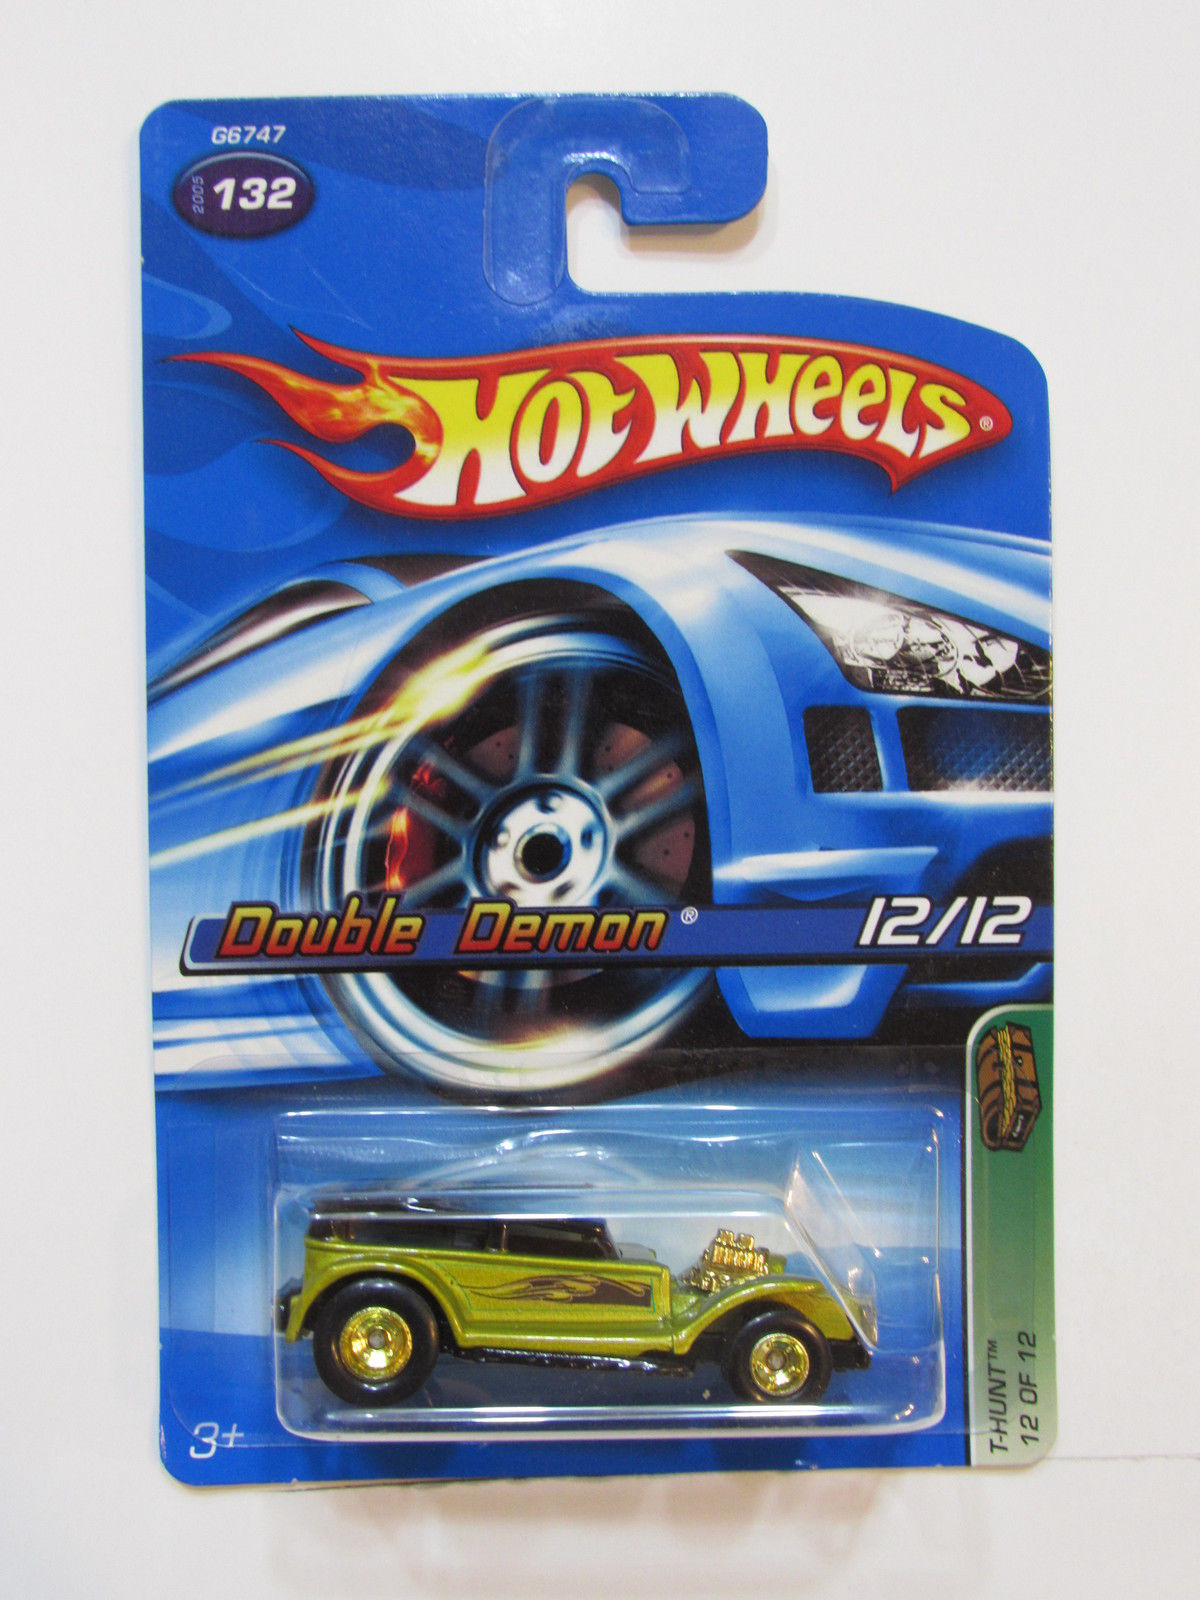 HOT WHEELS 2005 TREASURE HUNT DOUBLE DEMON #132